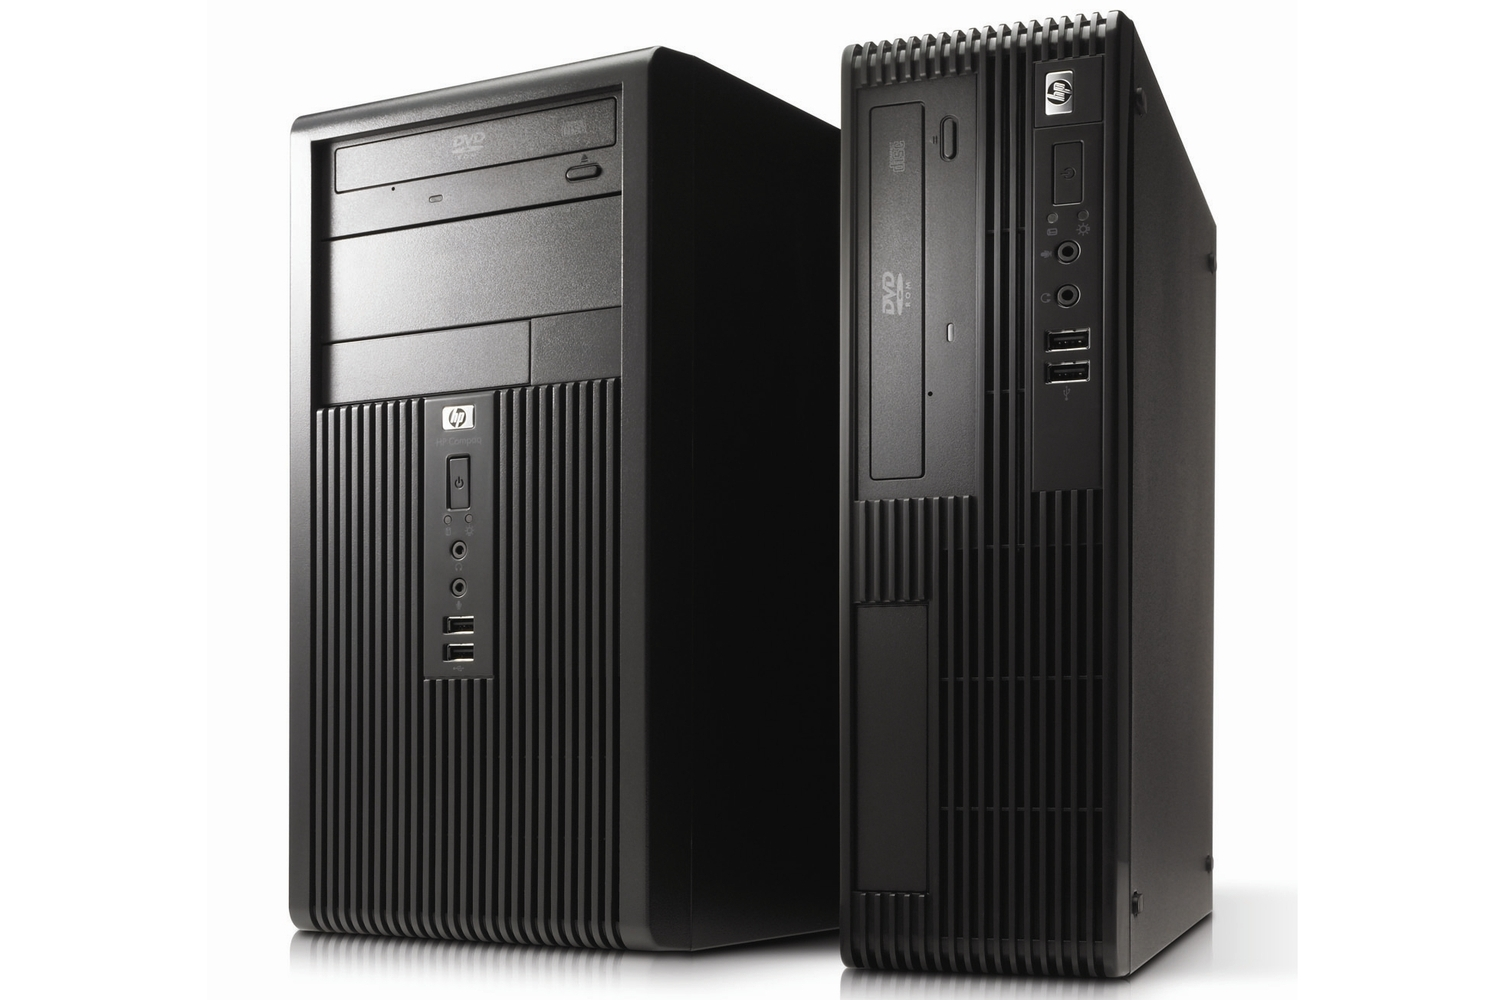 Hp Compaq Dx7400 Small Form Factor Pc Specifications